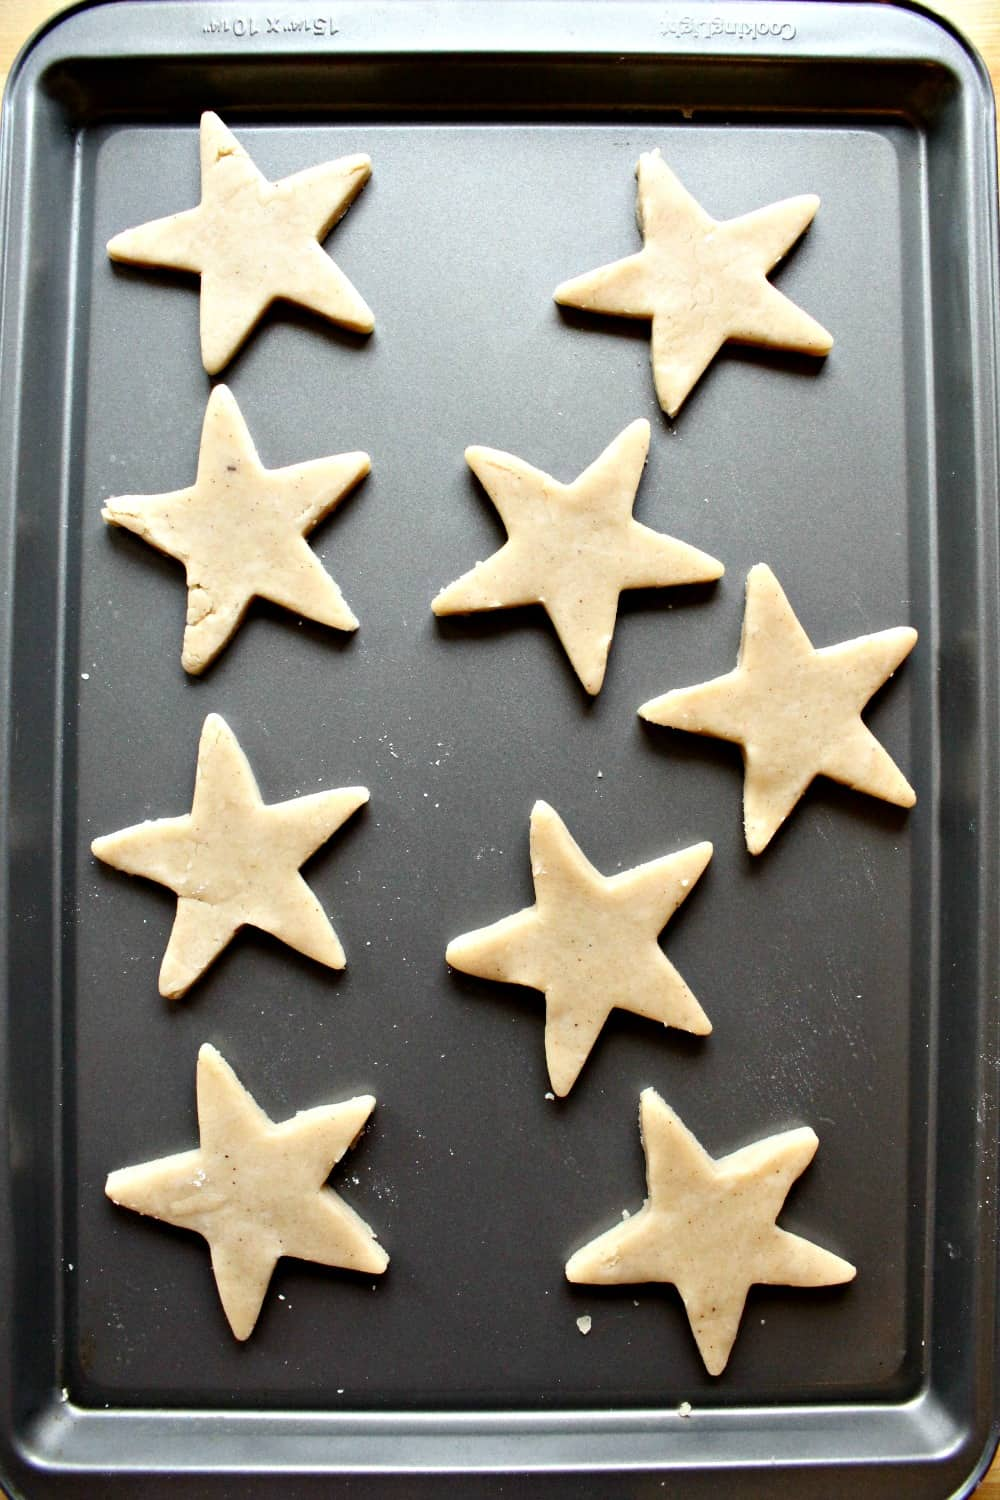 Star-shaped cookies on a cookie sheet.